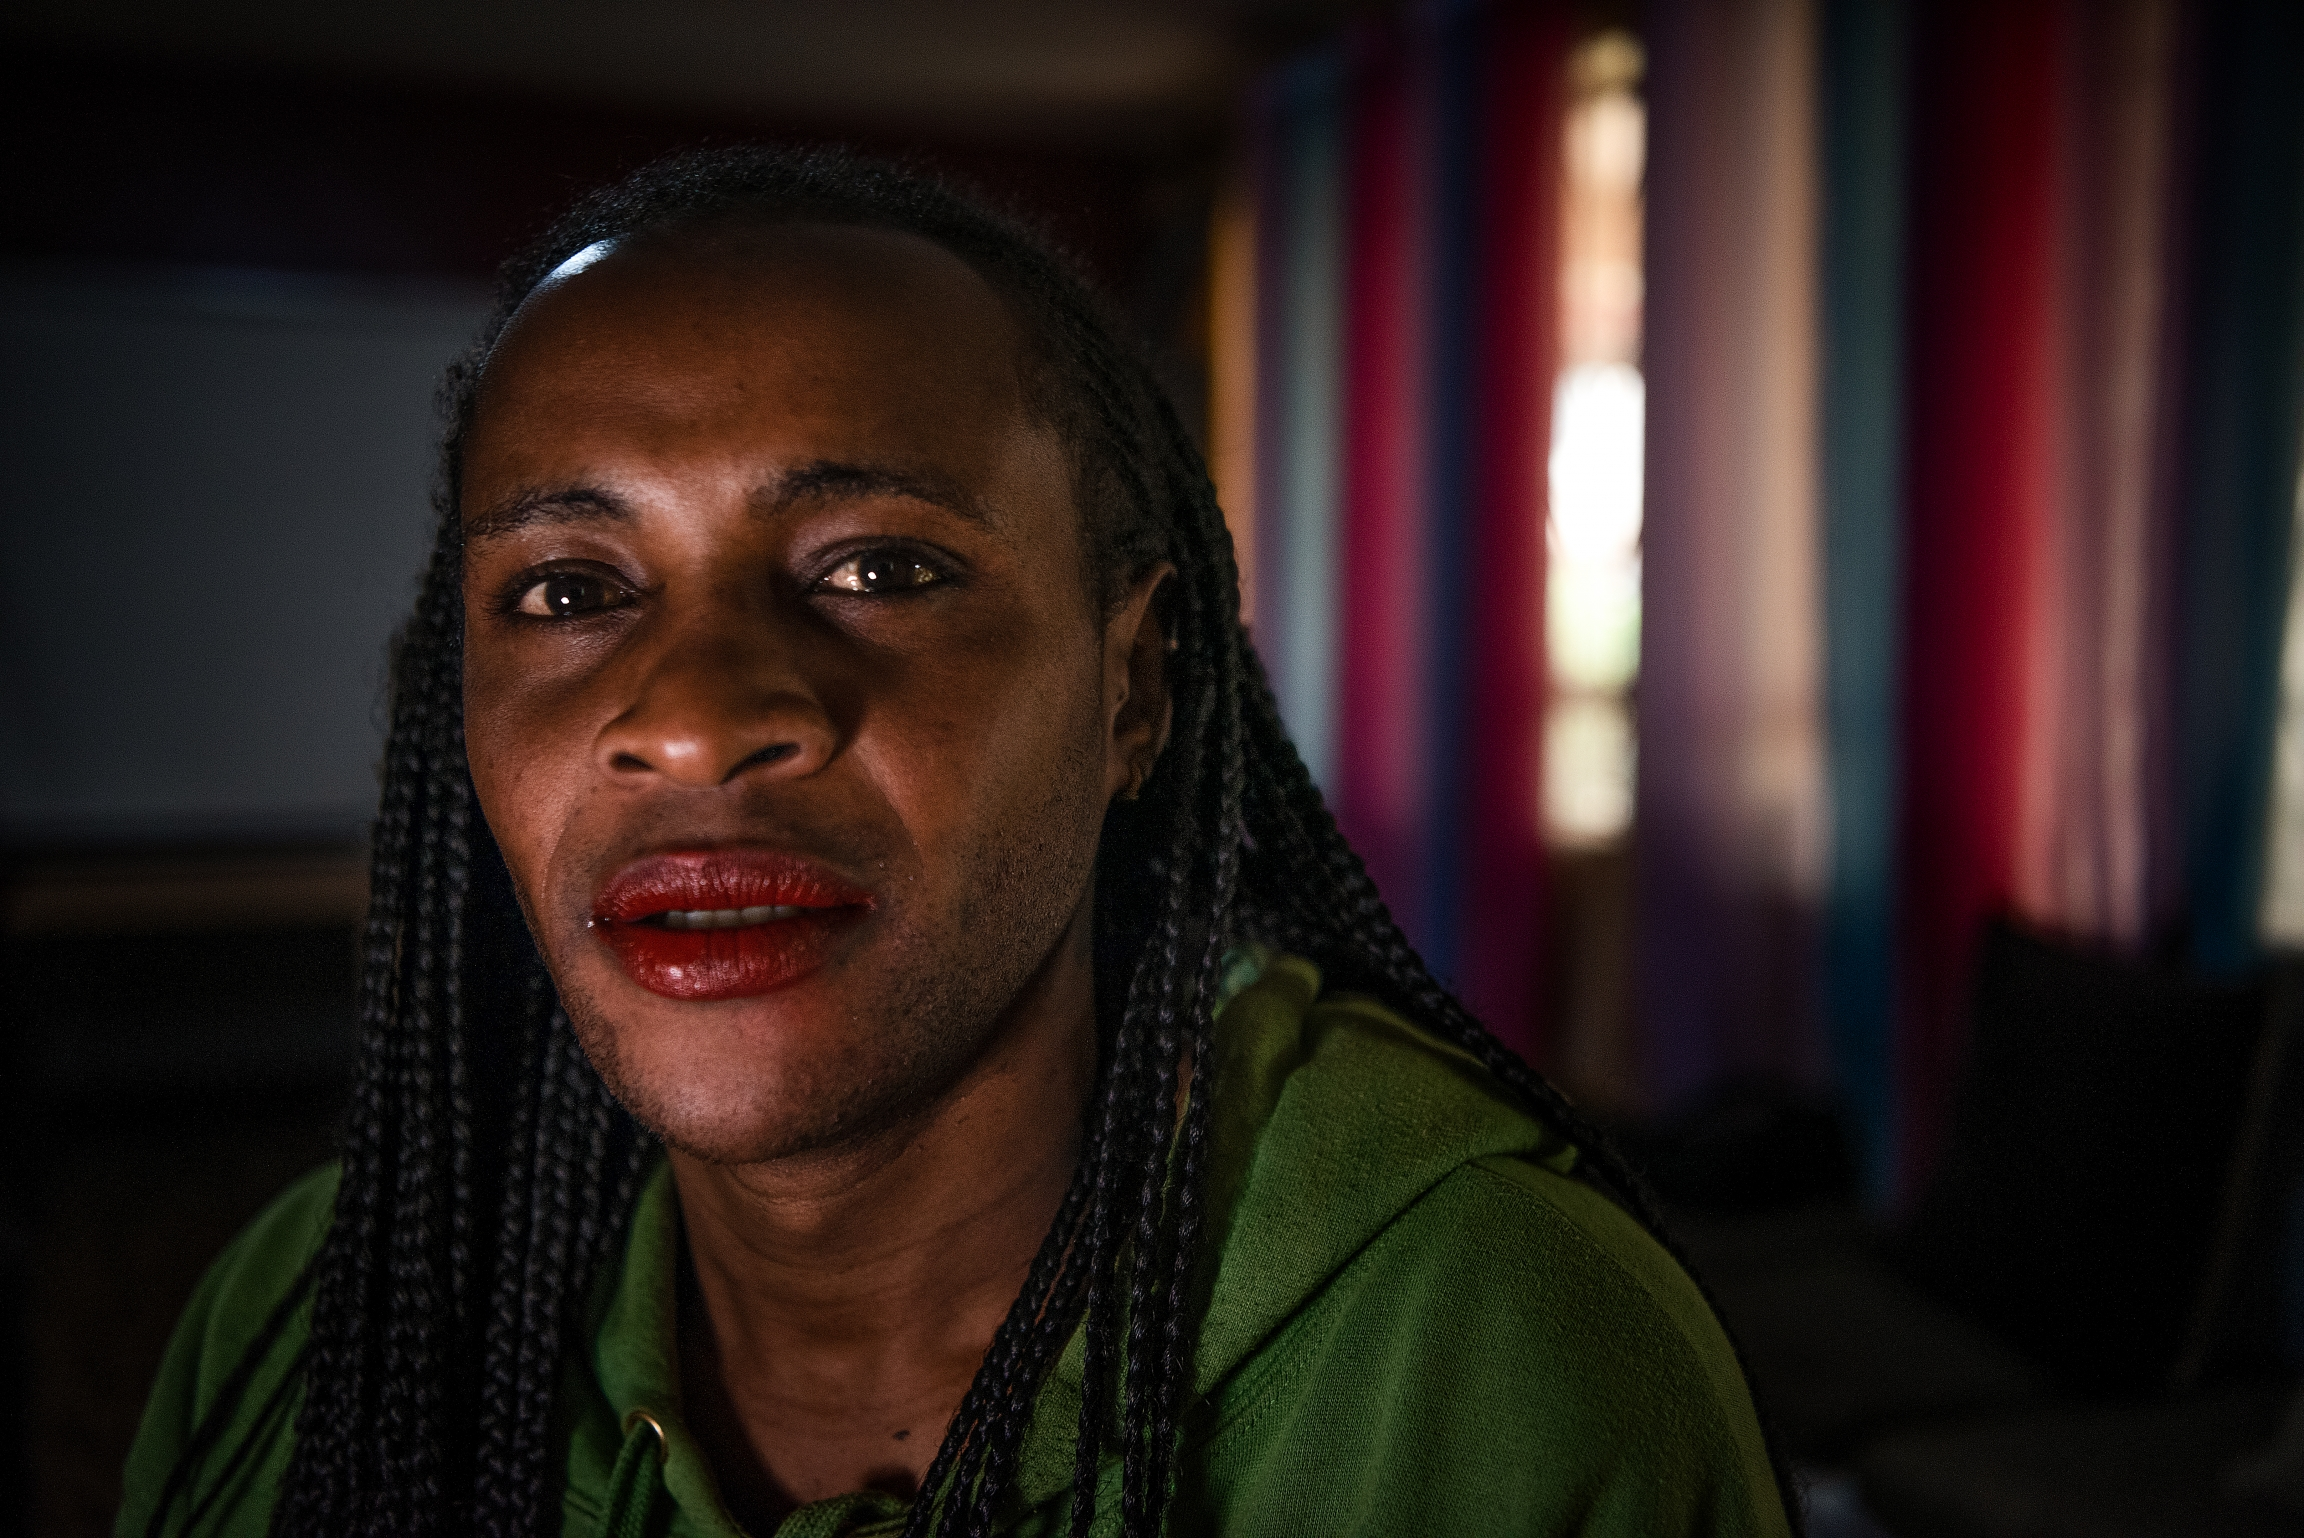 A Kenyan person with red lipstick poses for the camera